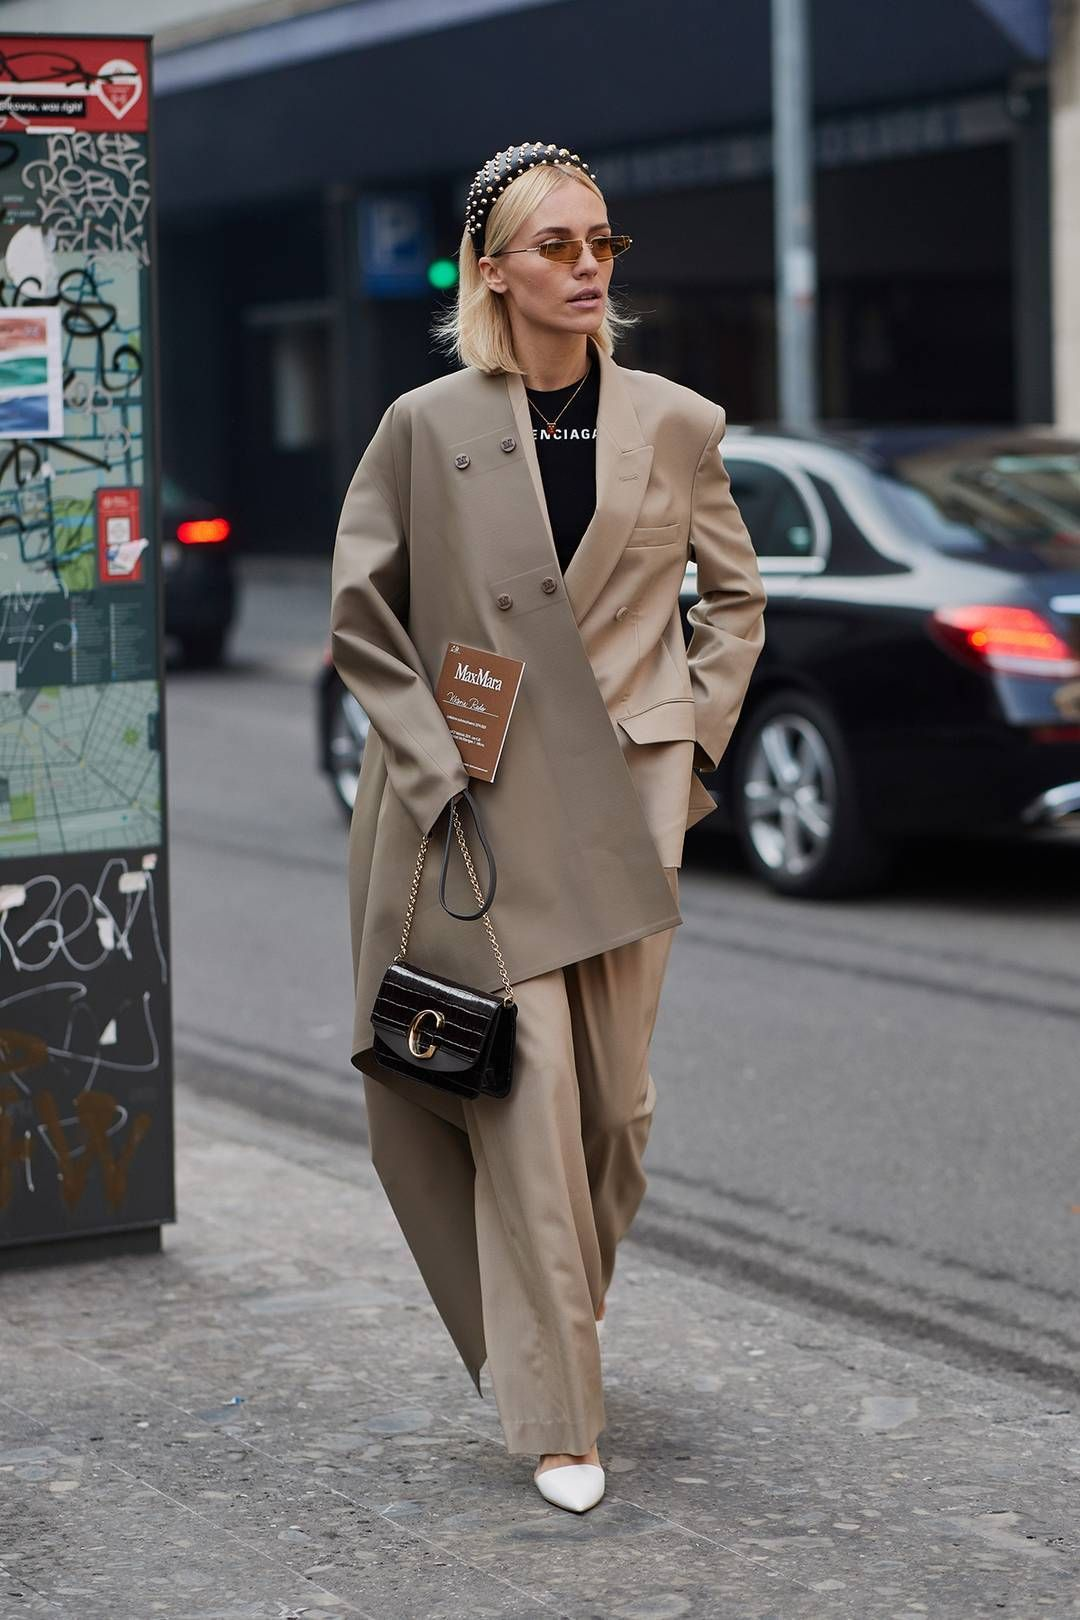 The Latest Street Style From Milan Fashion Week#fashion #latest #milan #street #style #week